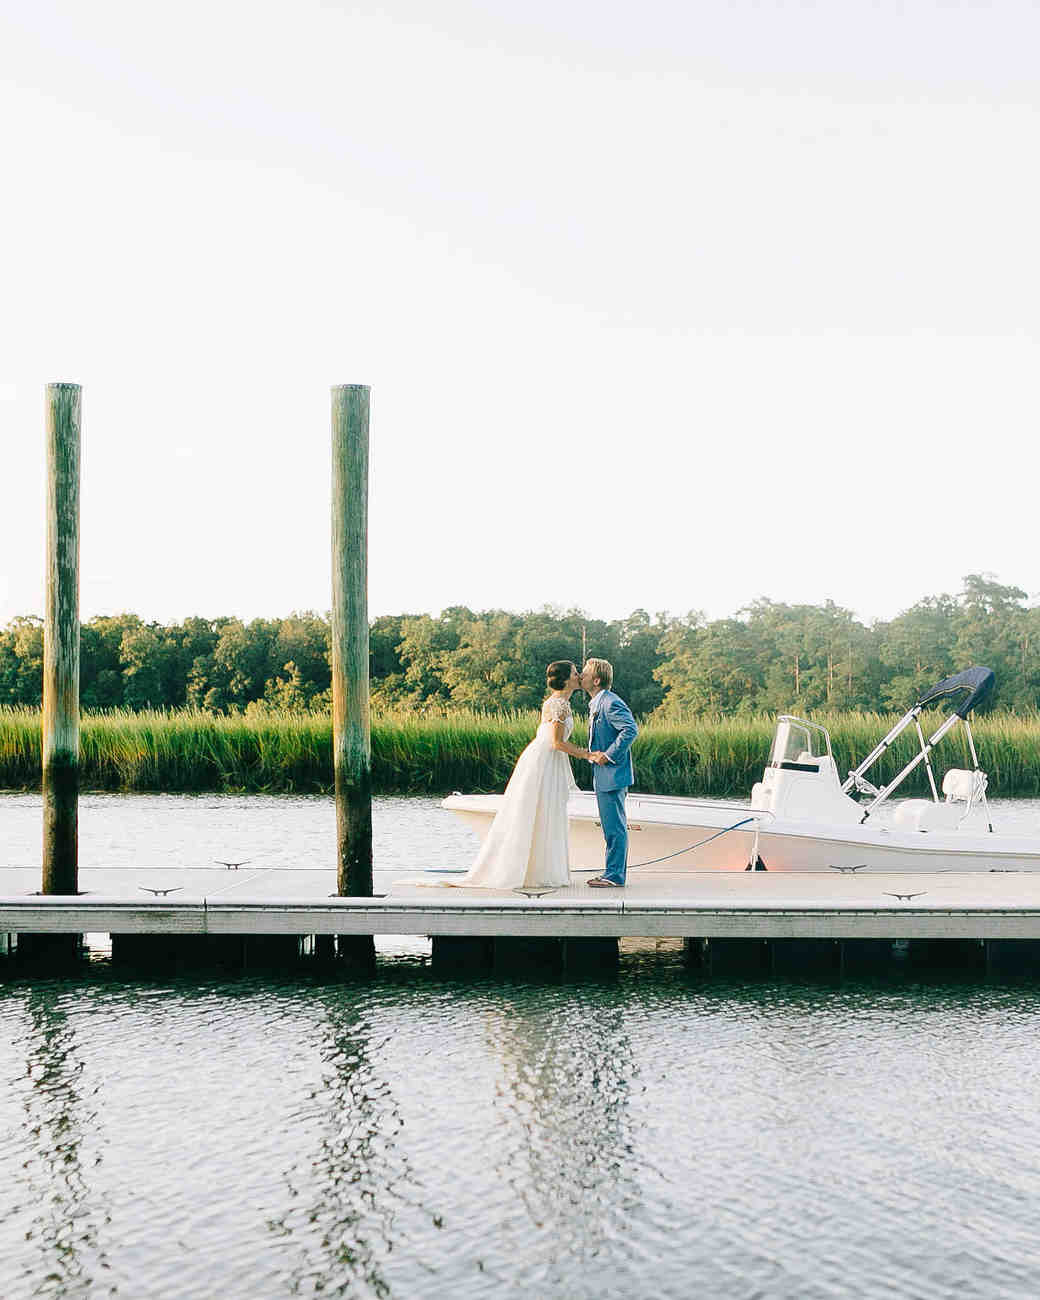 Couple Portrait on Dock